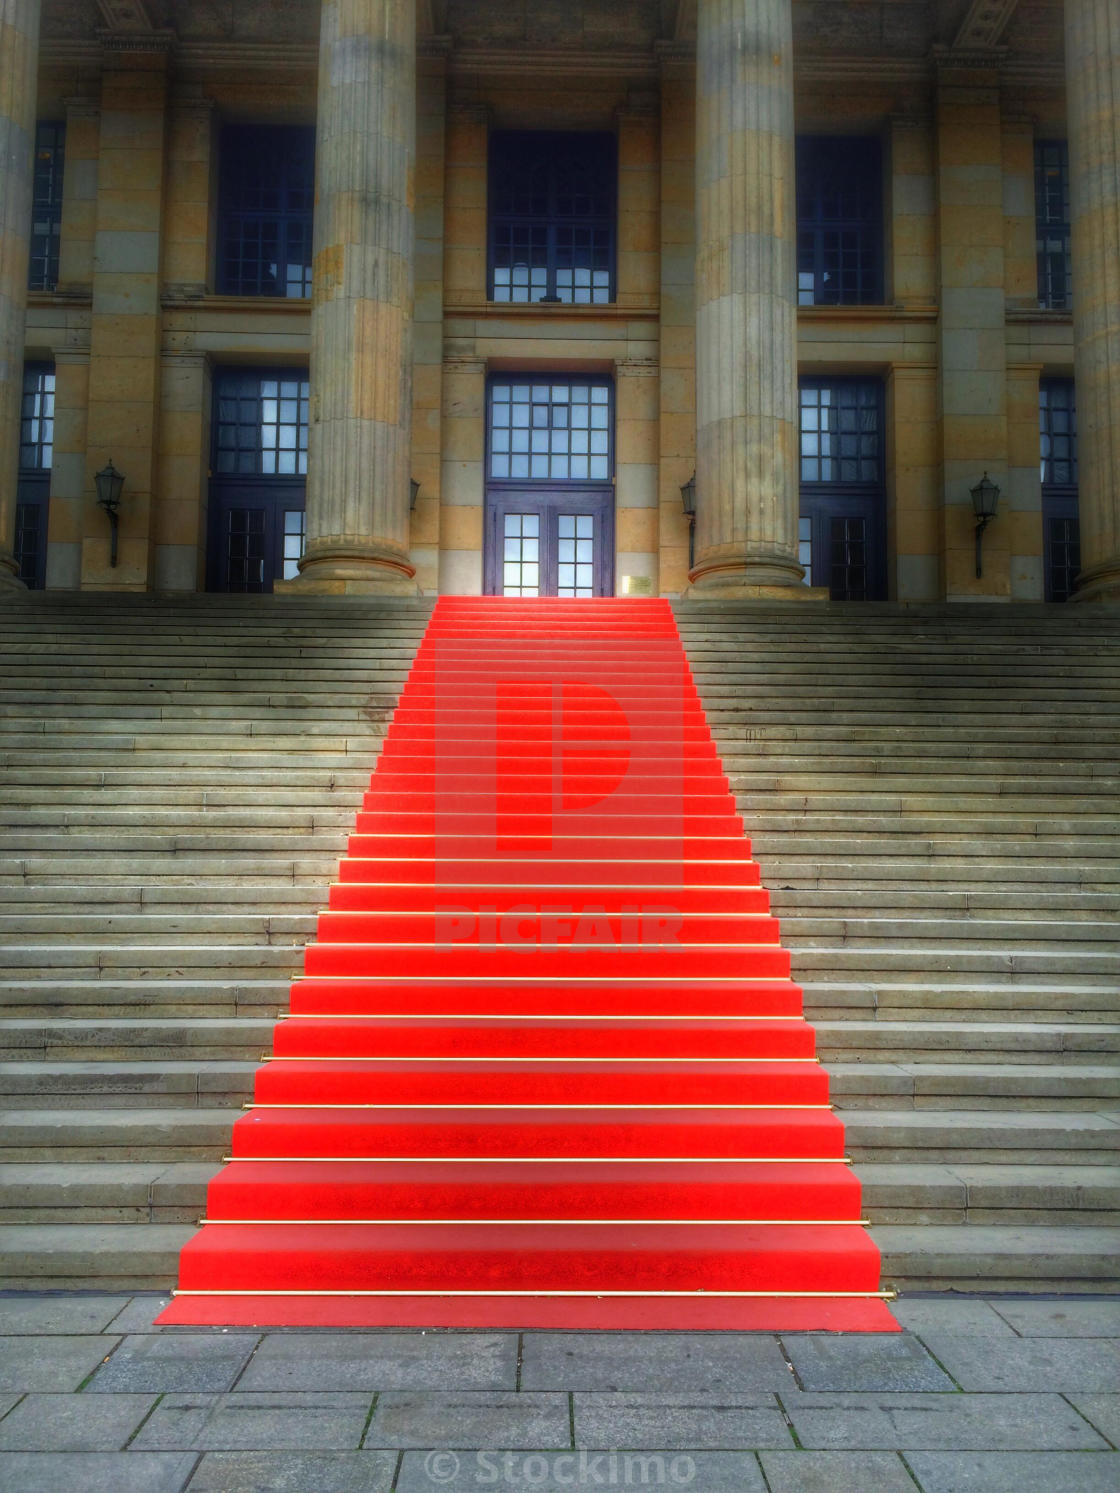 """Red carpet on the stairs"" stock image"